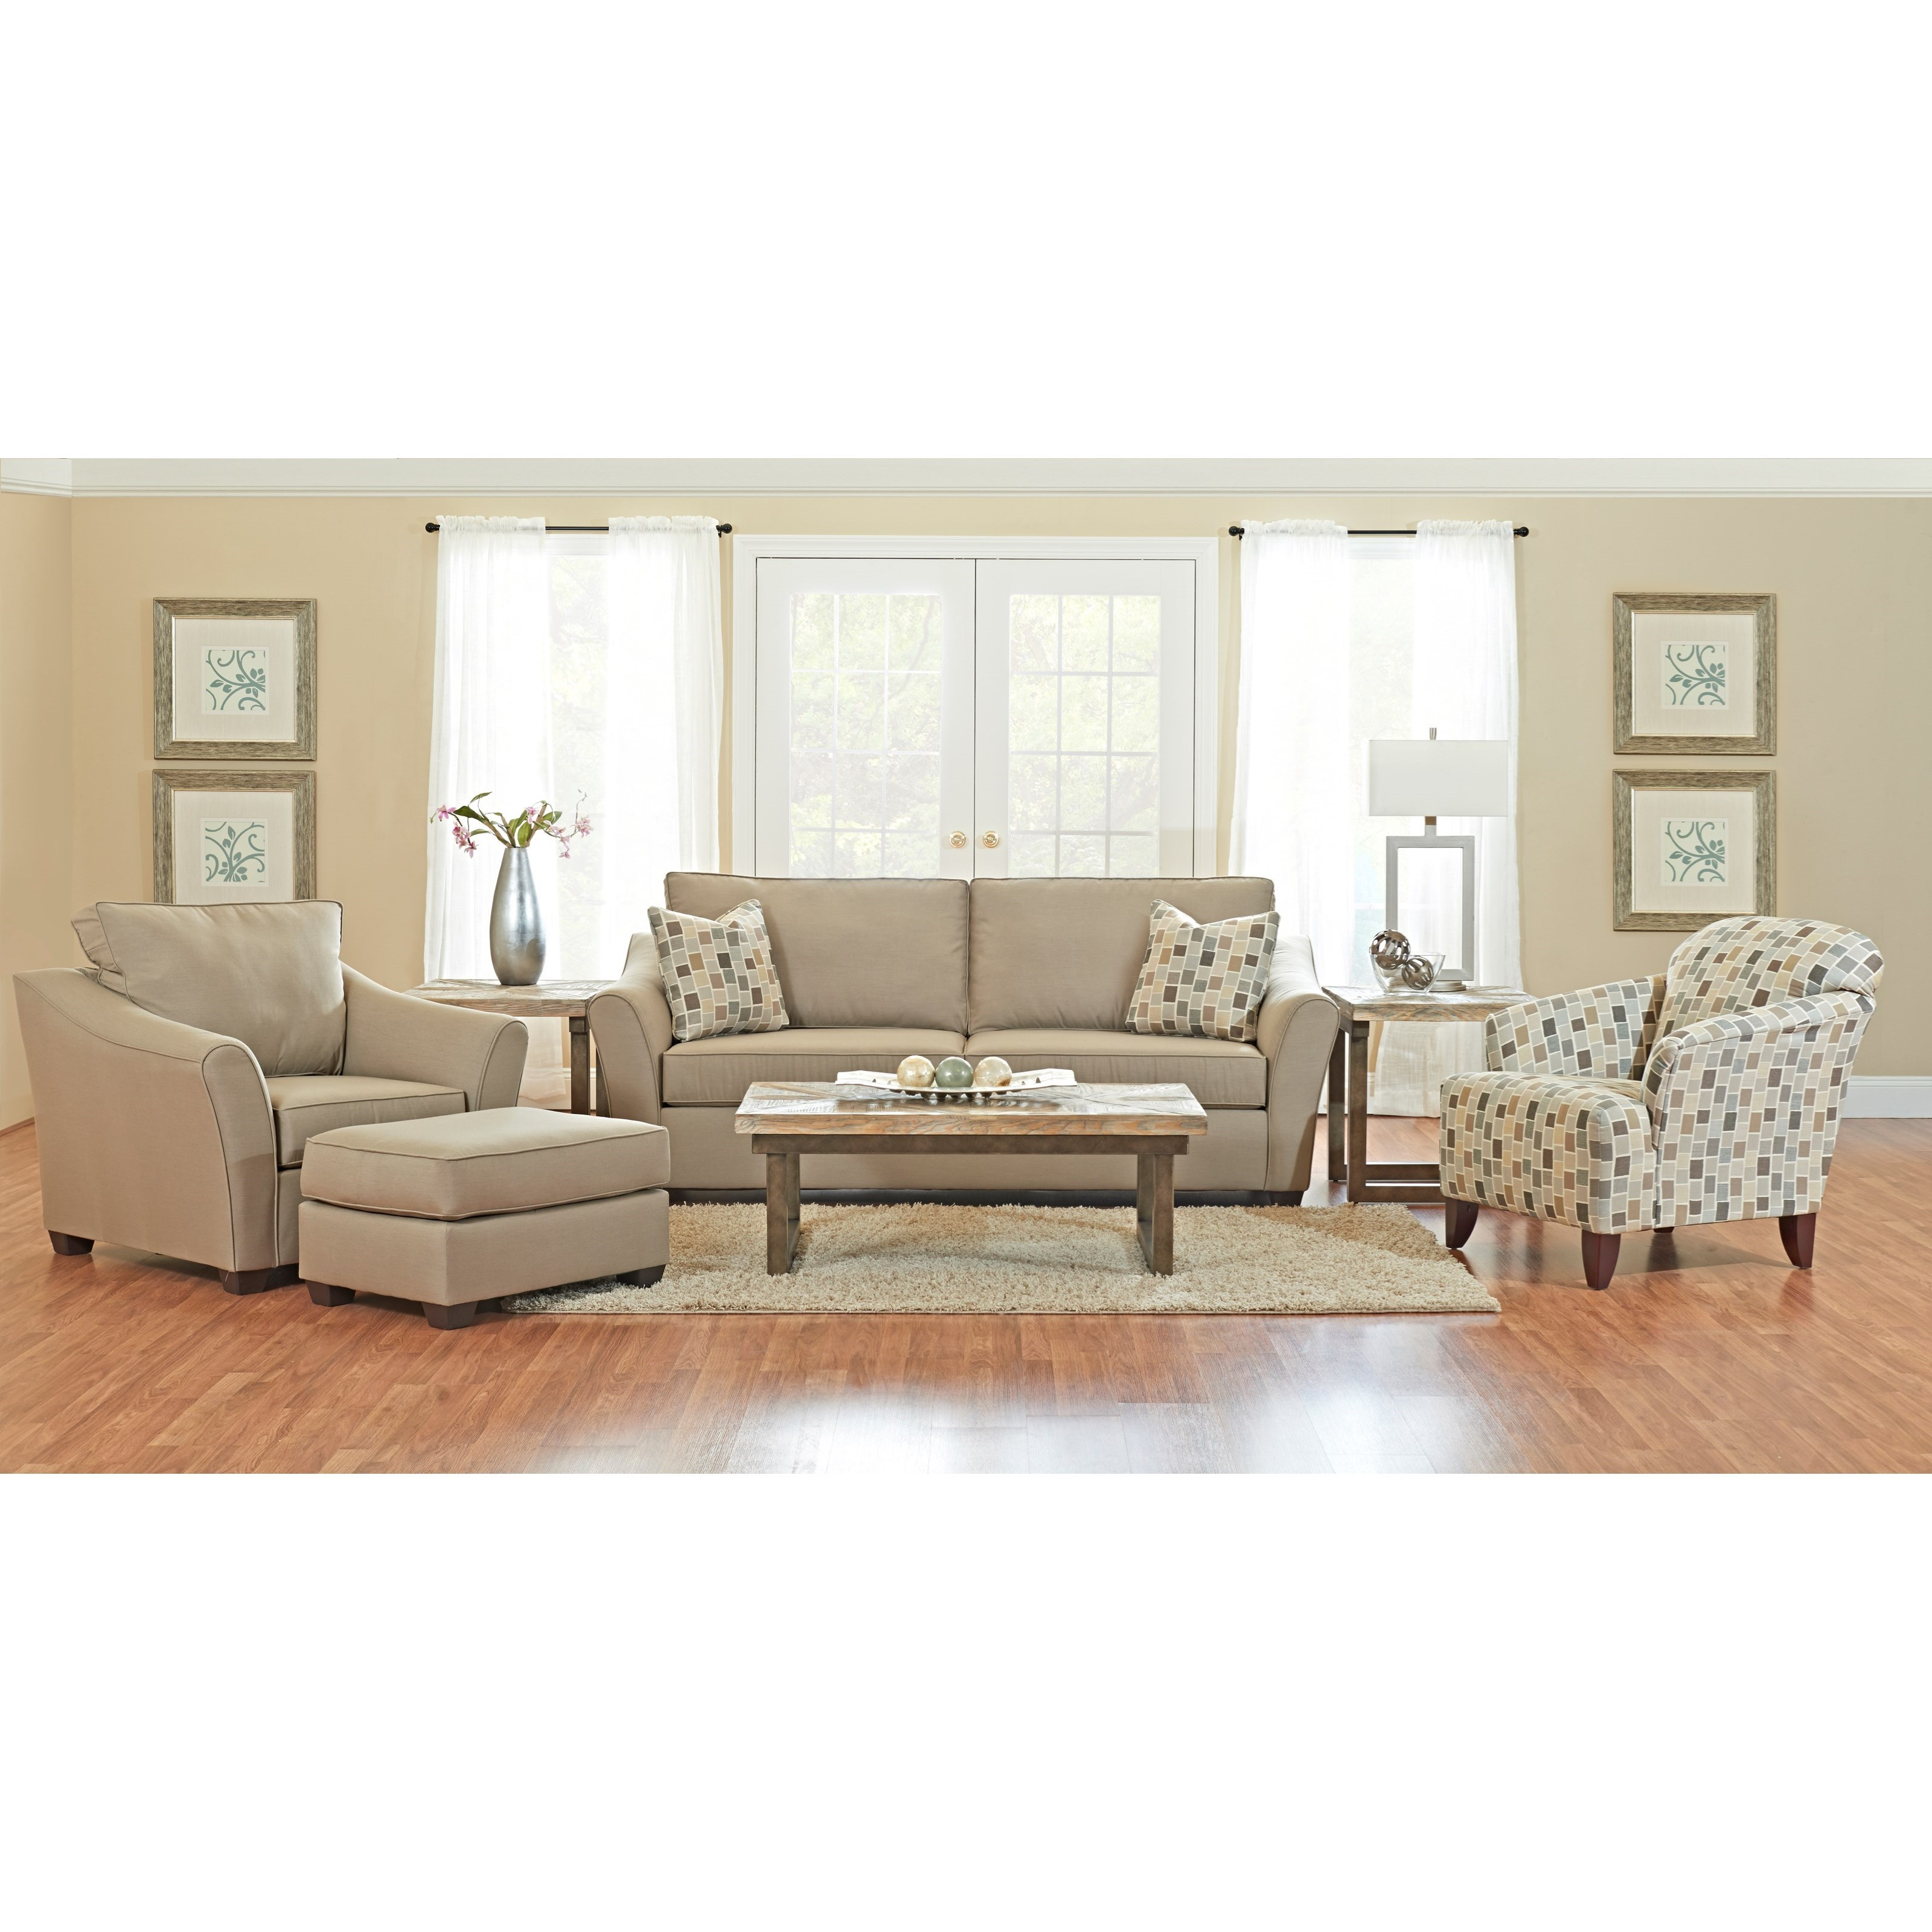 Klaussner Linville Living Room Group - Item Number: K80400 Living Room Group 4